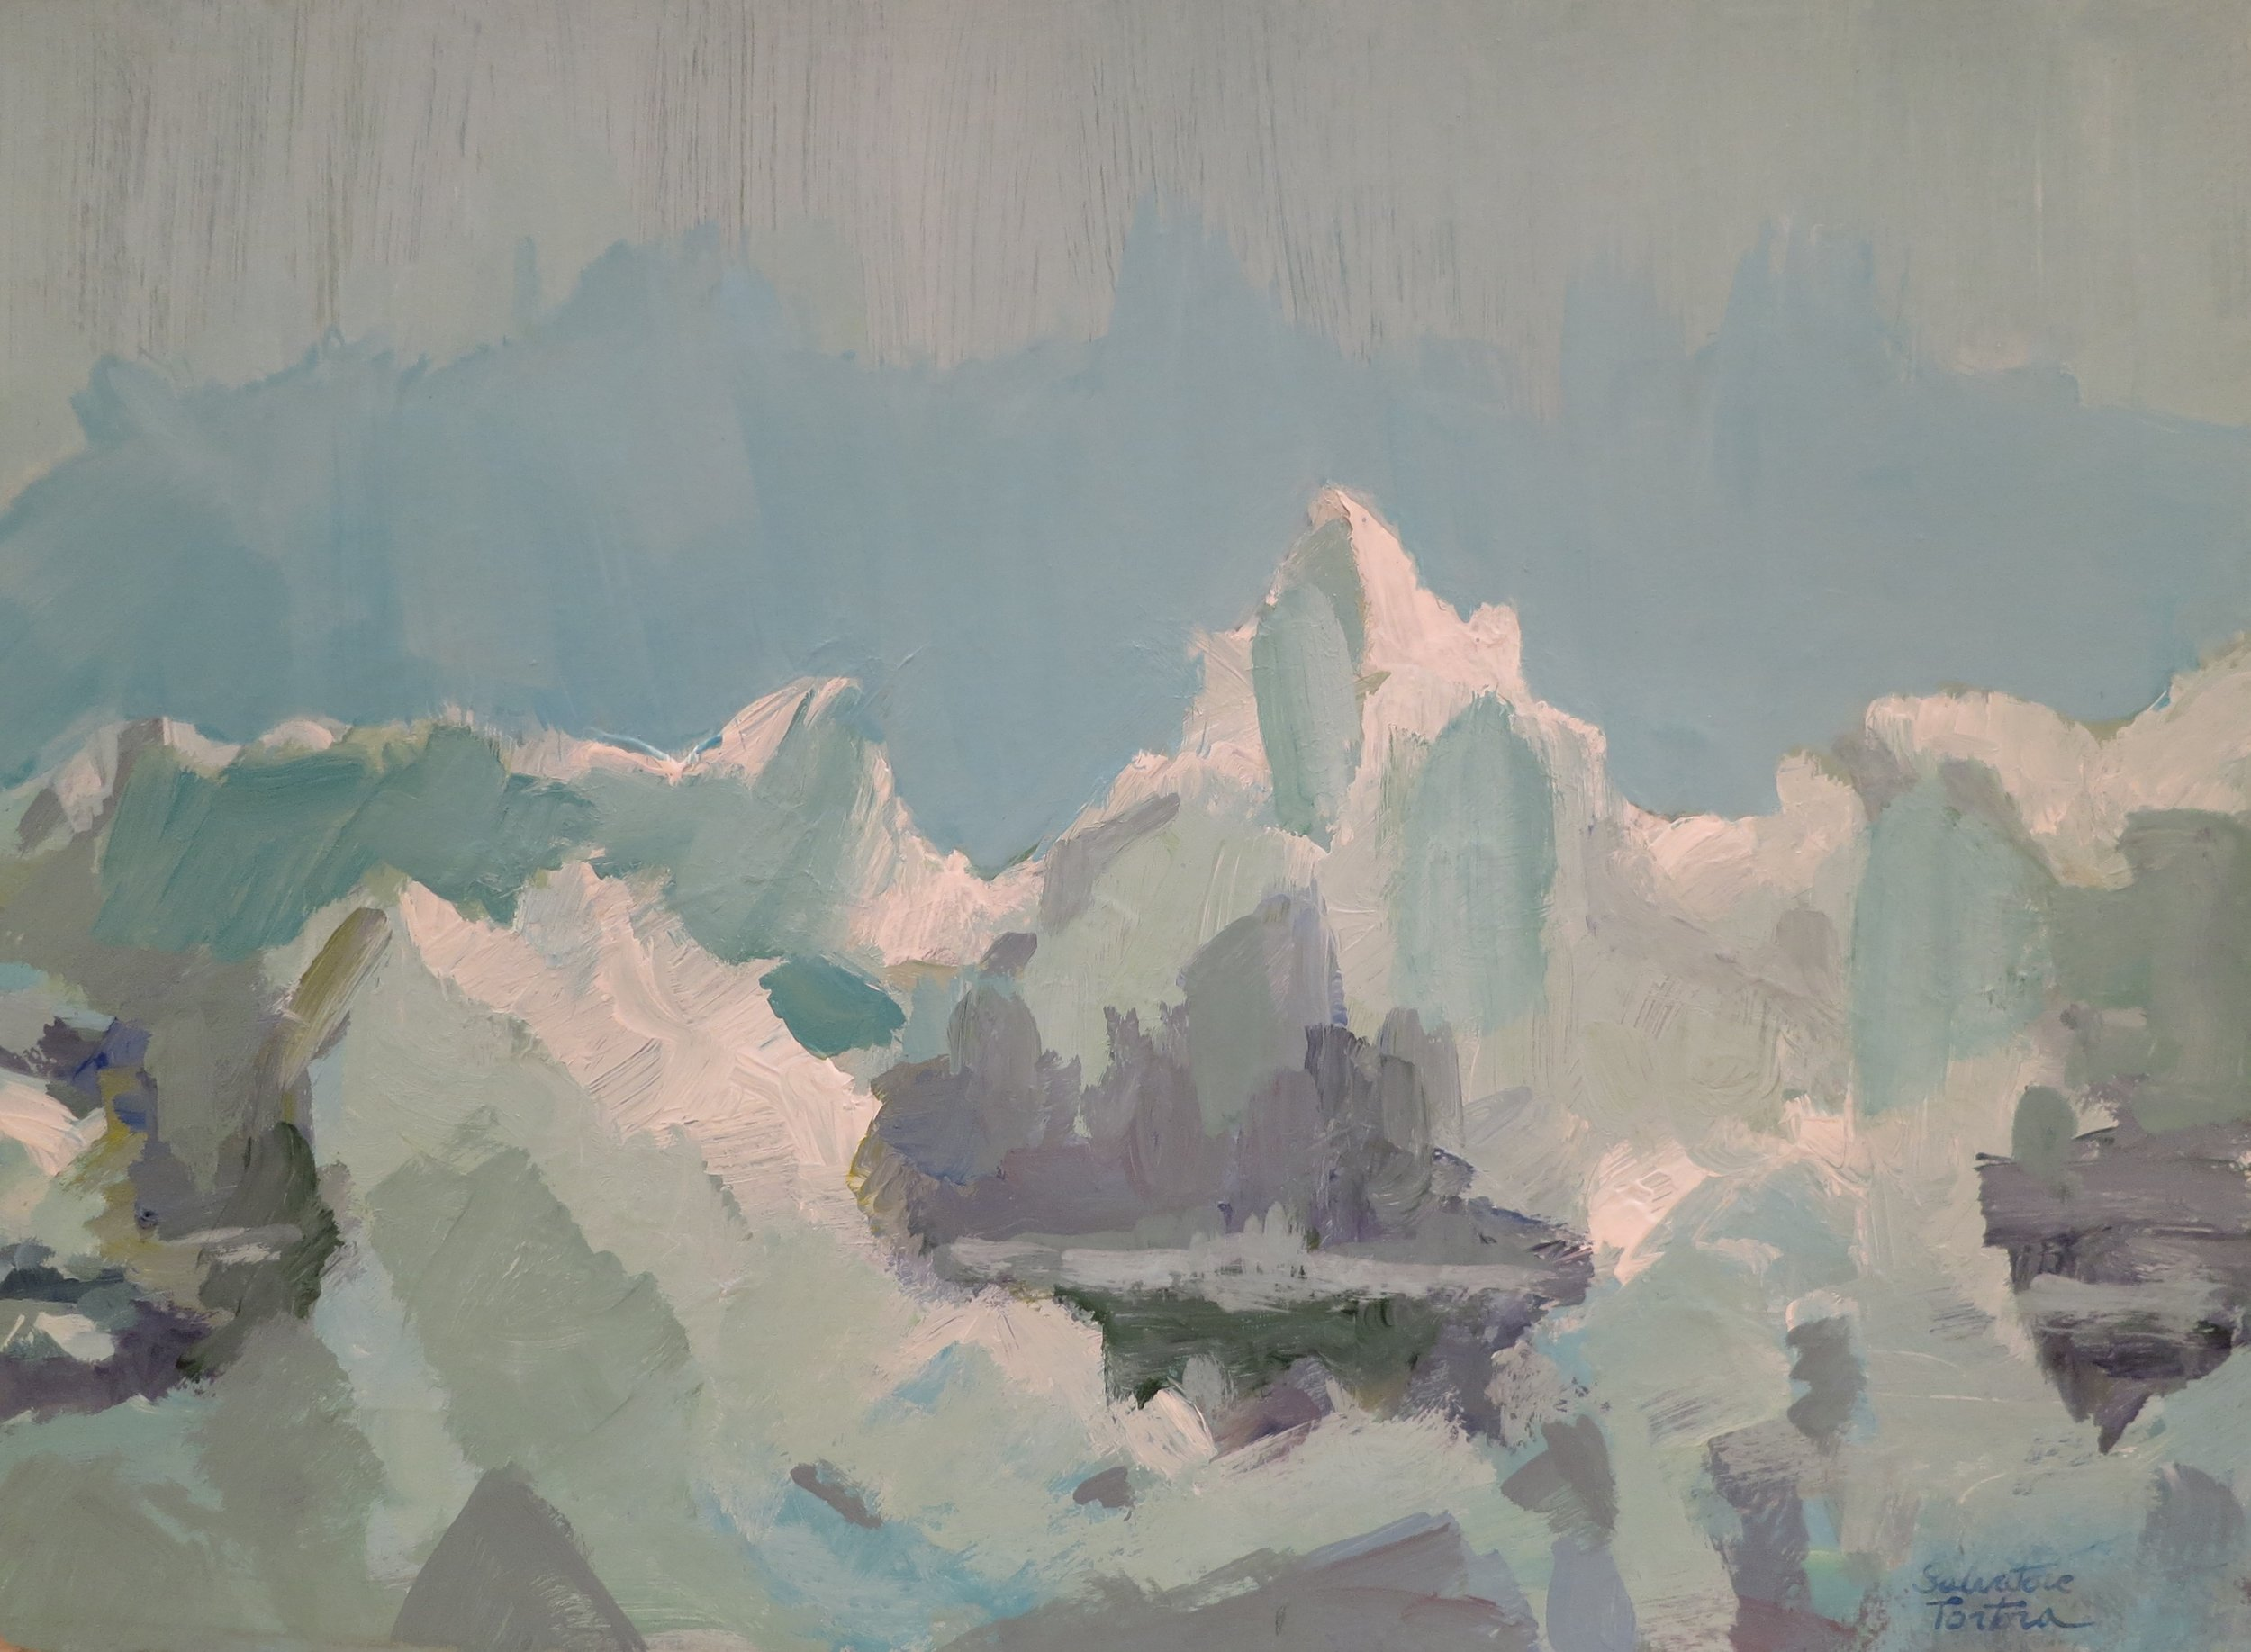 "Artic Impression (Light),      Acrylic, 11.5"" x 15"".  abstarct landscape with mountains in muted blue, green, pink, gray, purple."